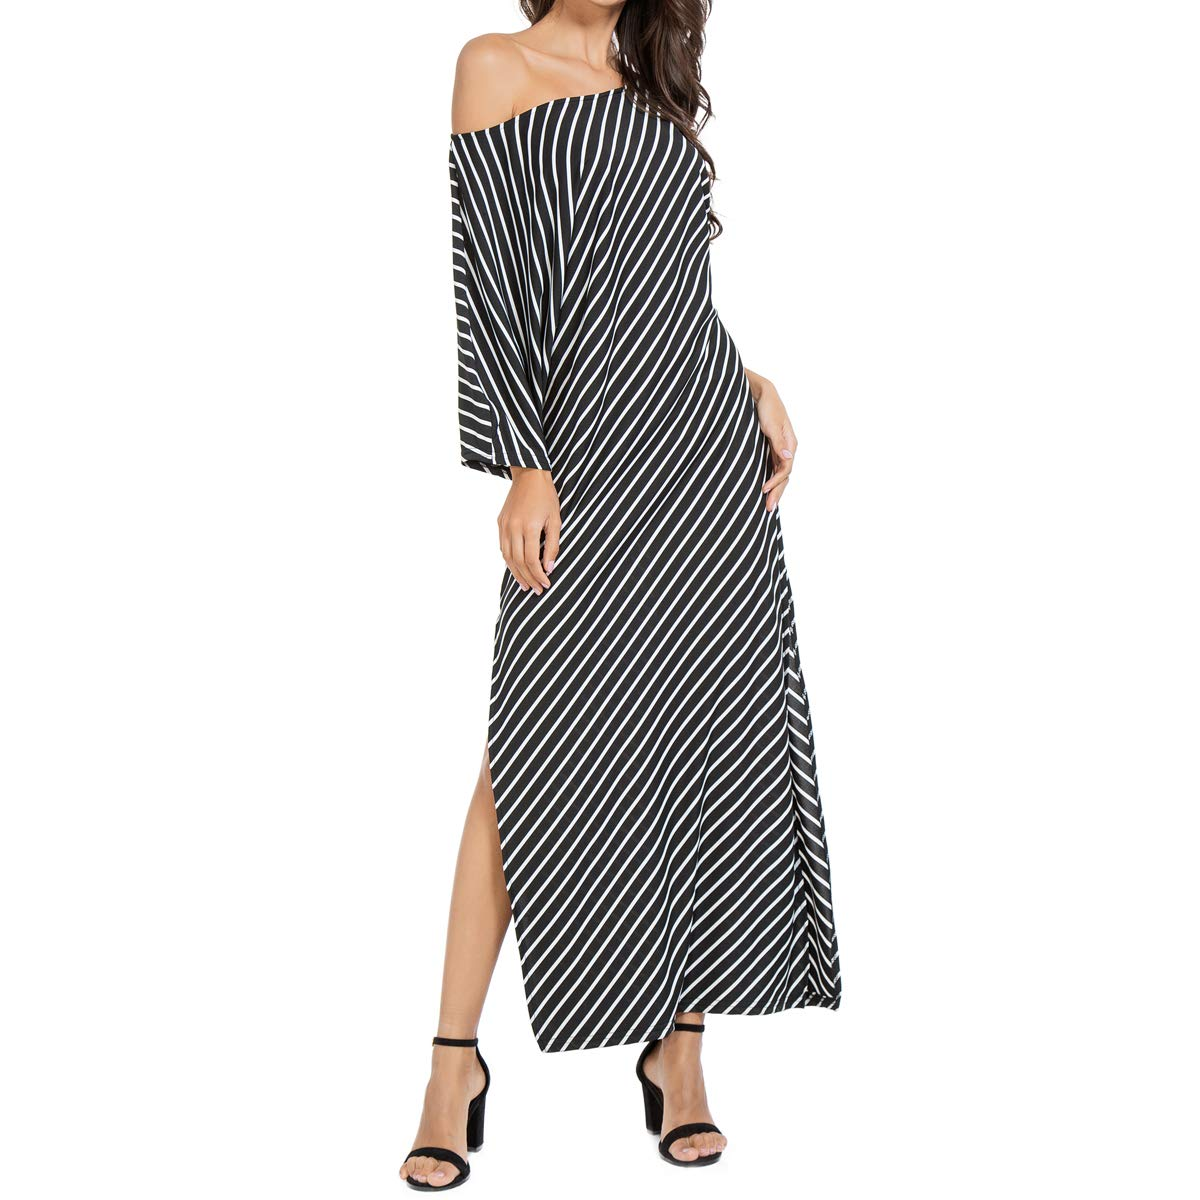 2b2f6e17d0f2 JTANIB Women's Striped Kaftan Maxi Dress, Irregular Slit Casual Half Sleeve  Loose Beach Dresses